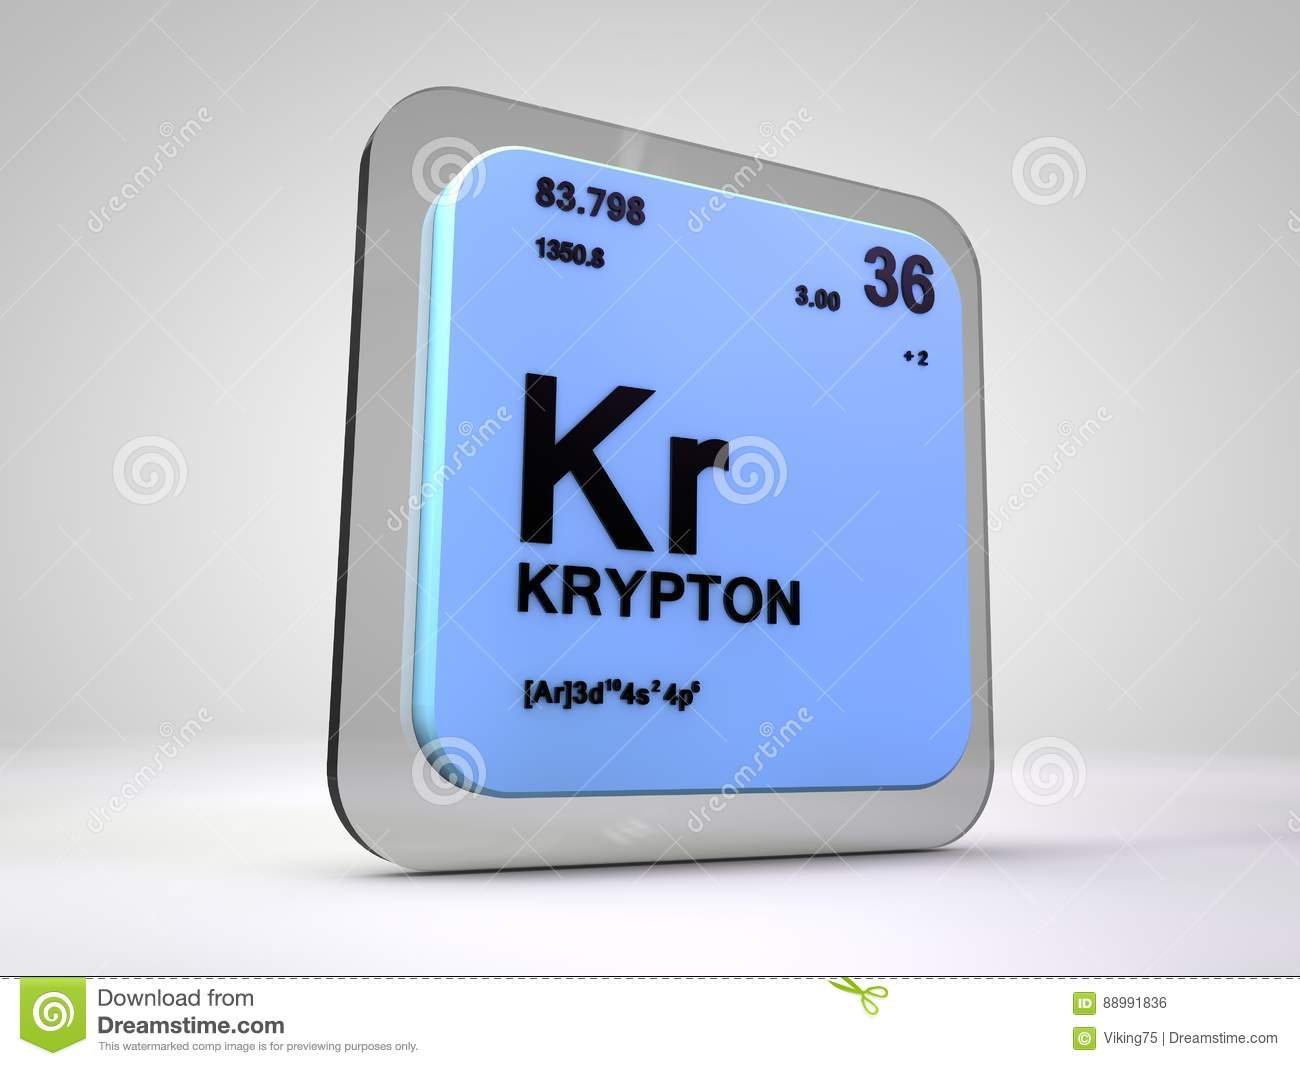 Krypton kr chemical element periodic table stock illustration krypton kr chemical element periodic table buycottarizona